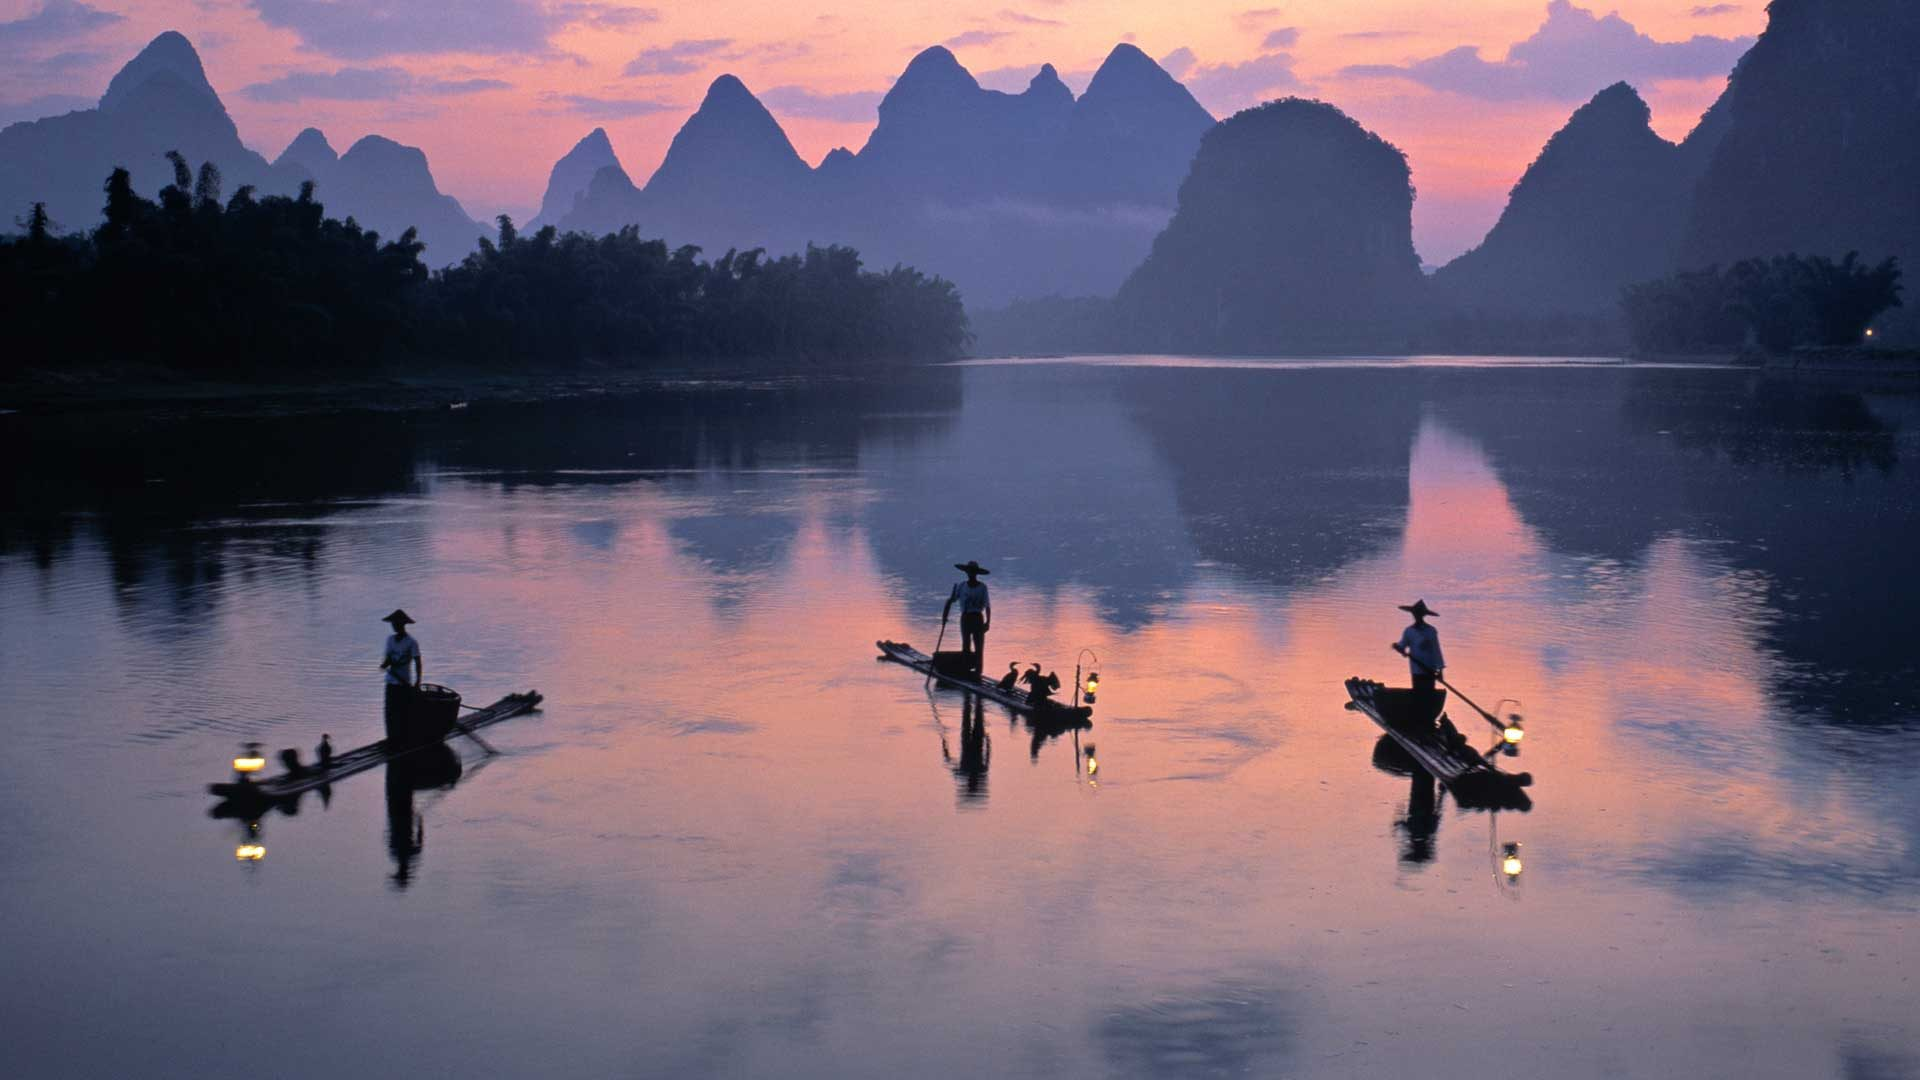 Cormorant fishermen on the Li River in Yangshuo, China with GeoEx